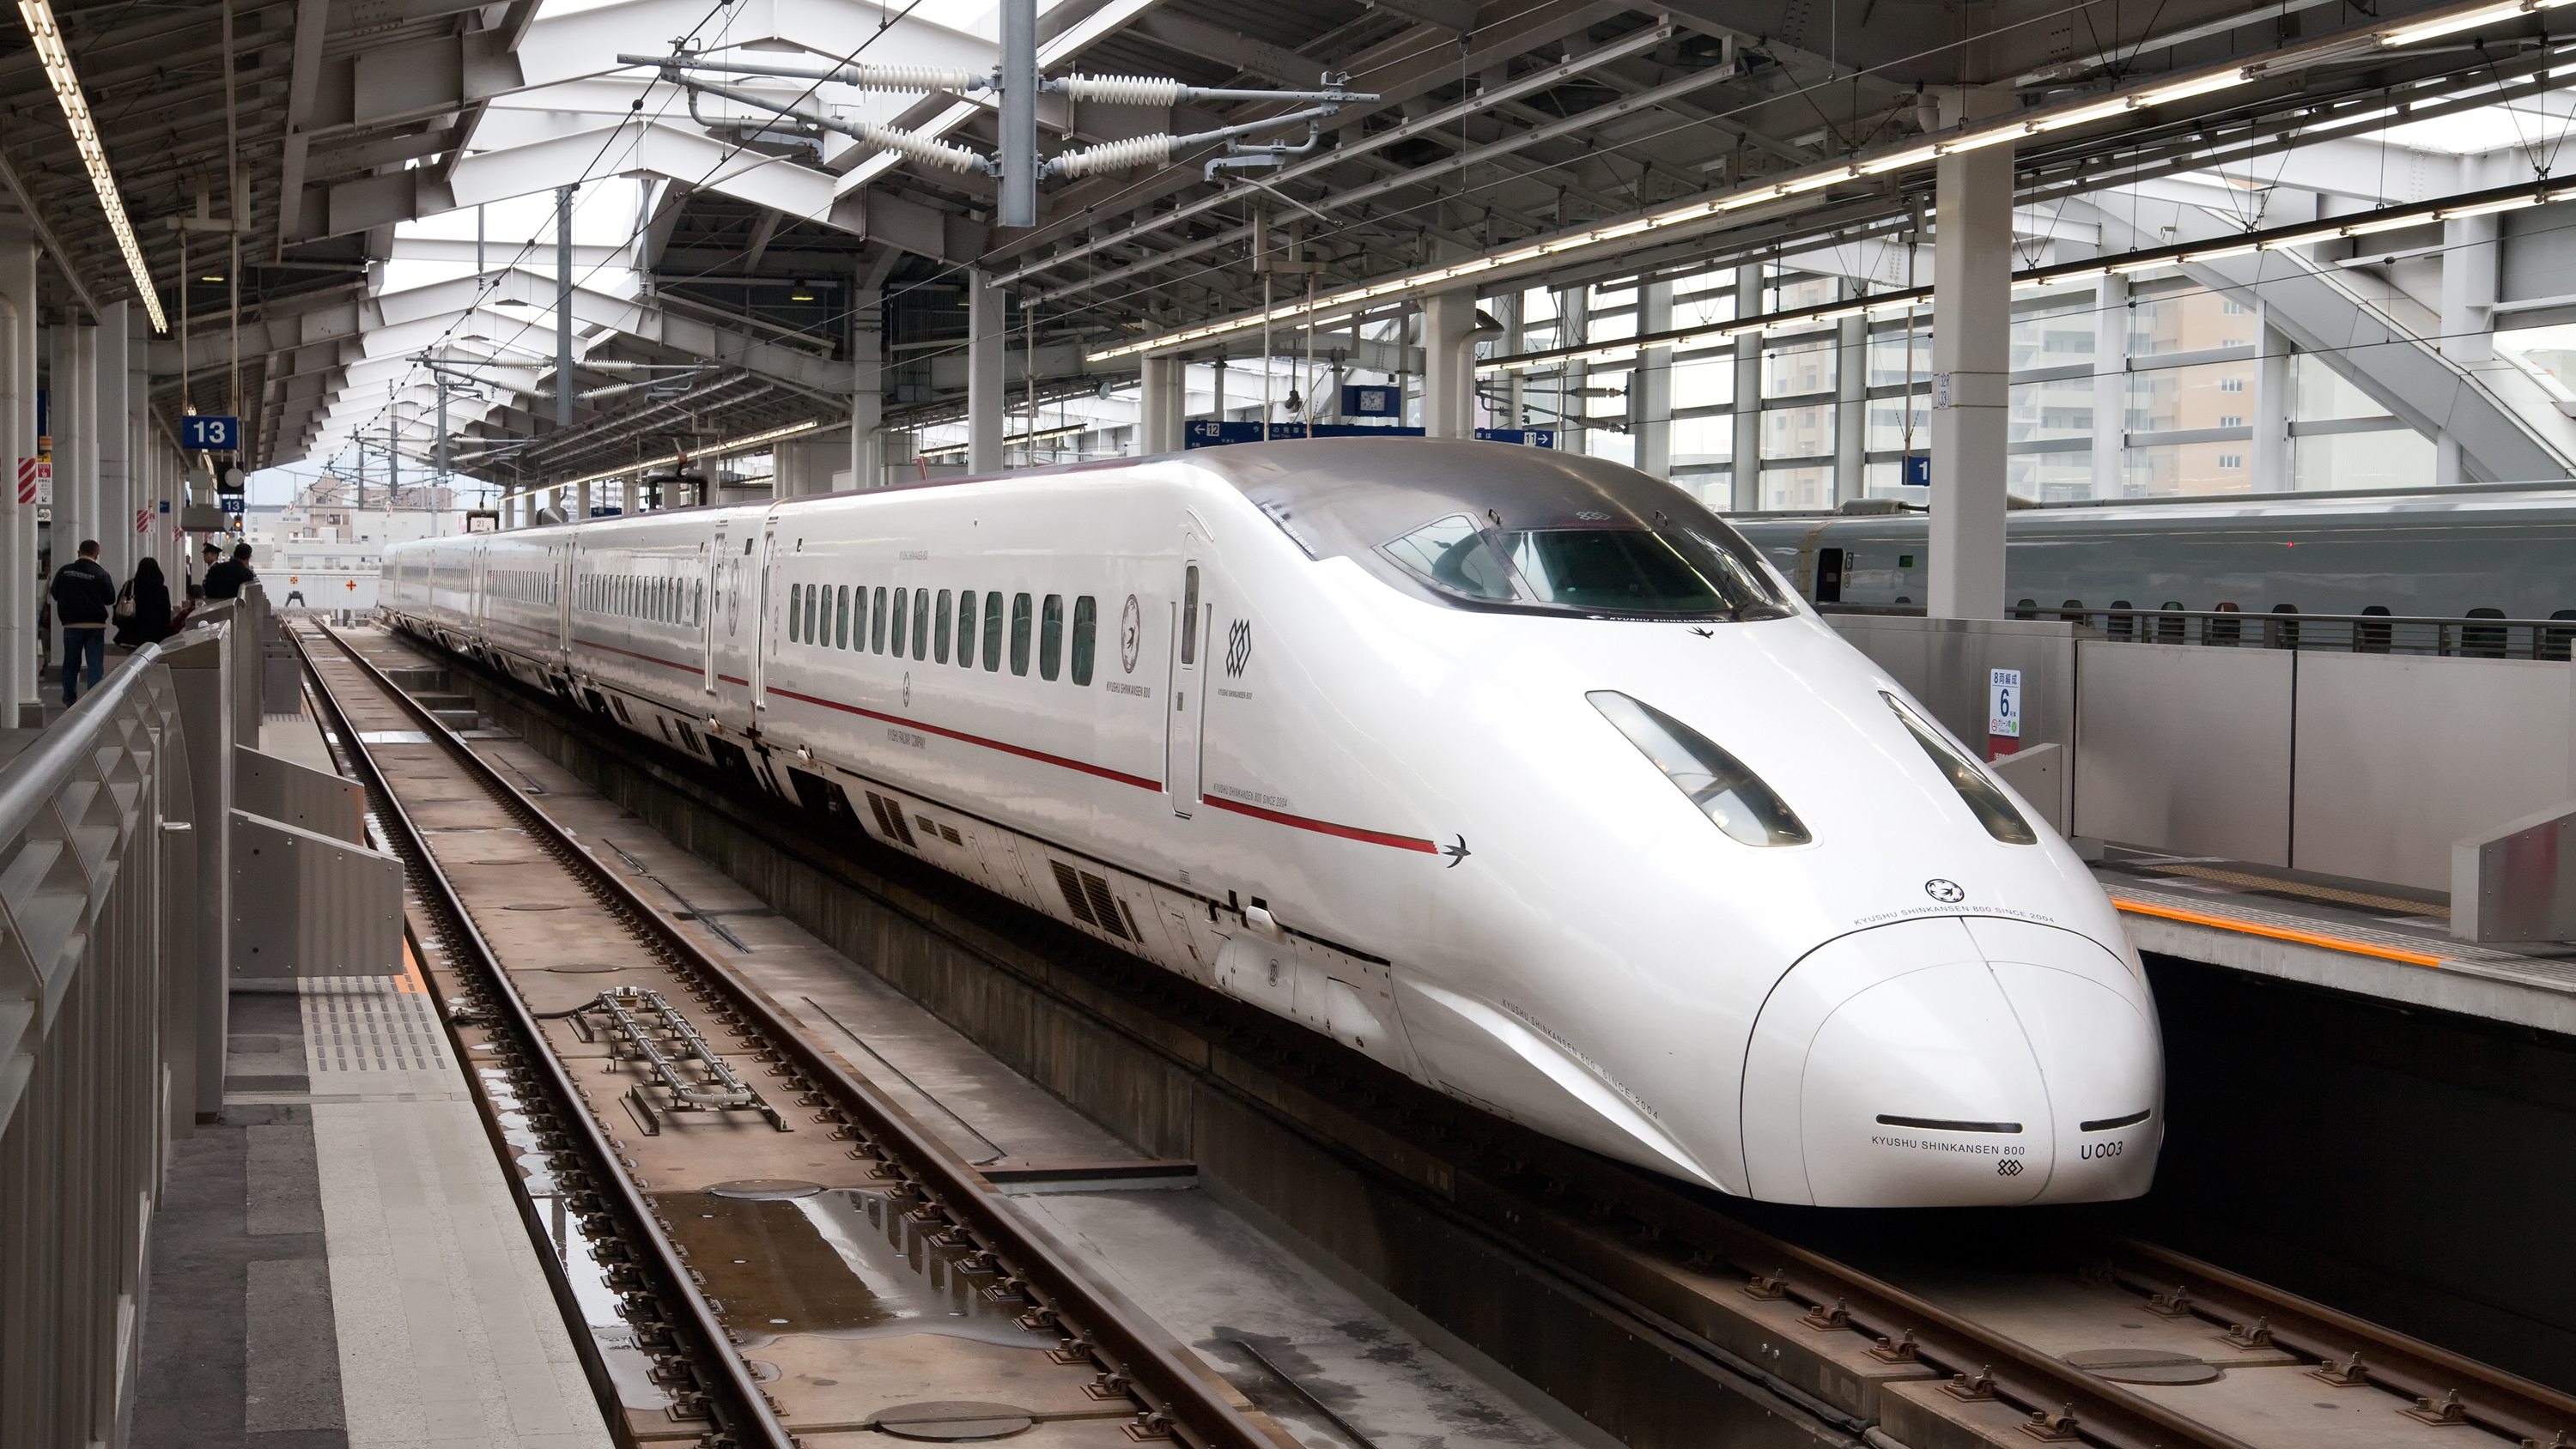 Foreign residents are now eligible for discounted JR Kyushu passes